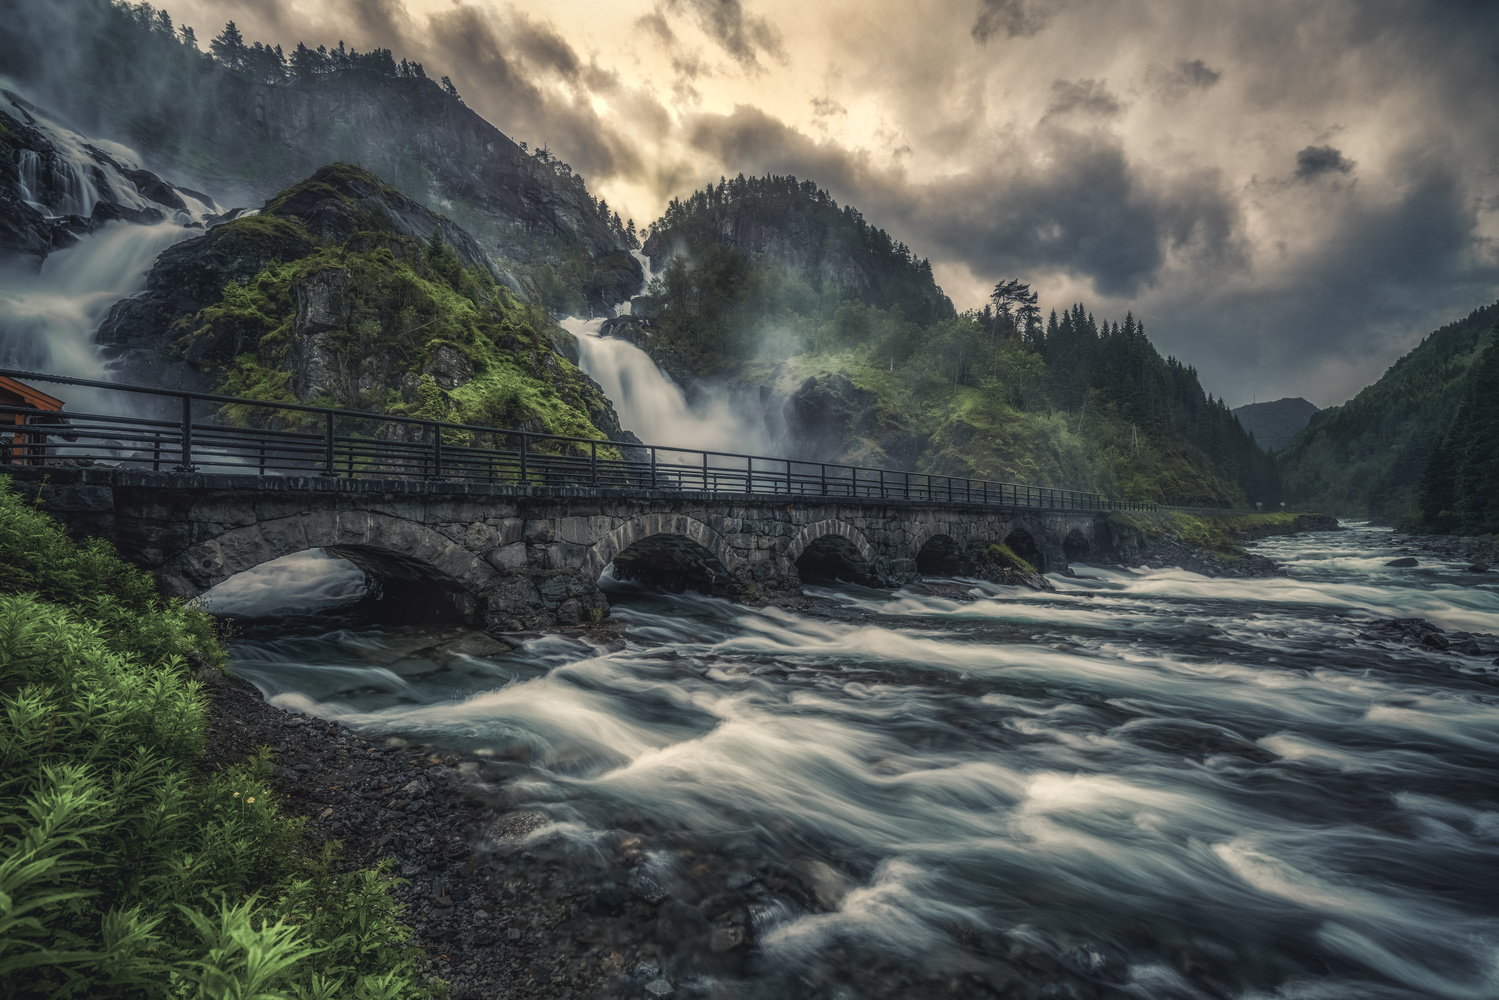 I love this waterfall😊 by Hans Strand